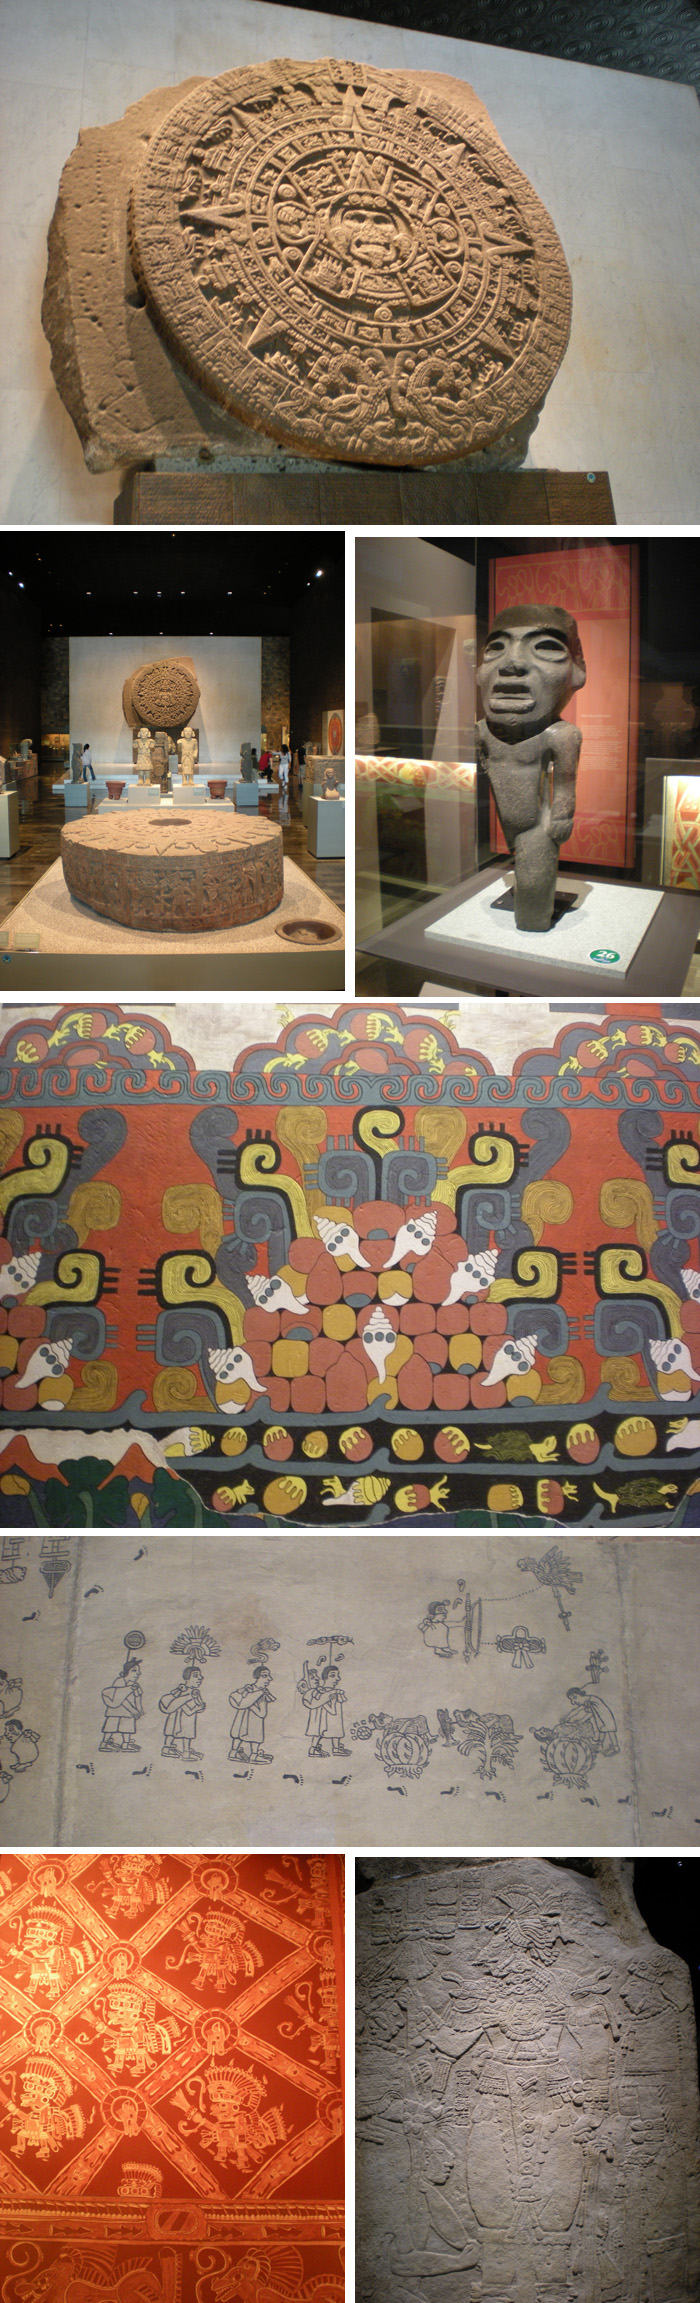 Both collections and museographies are great in National Museum of Anthropology, Mexico City